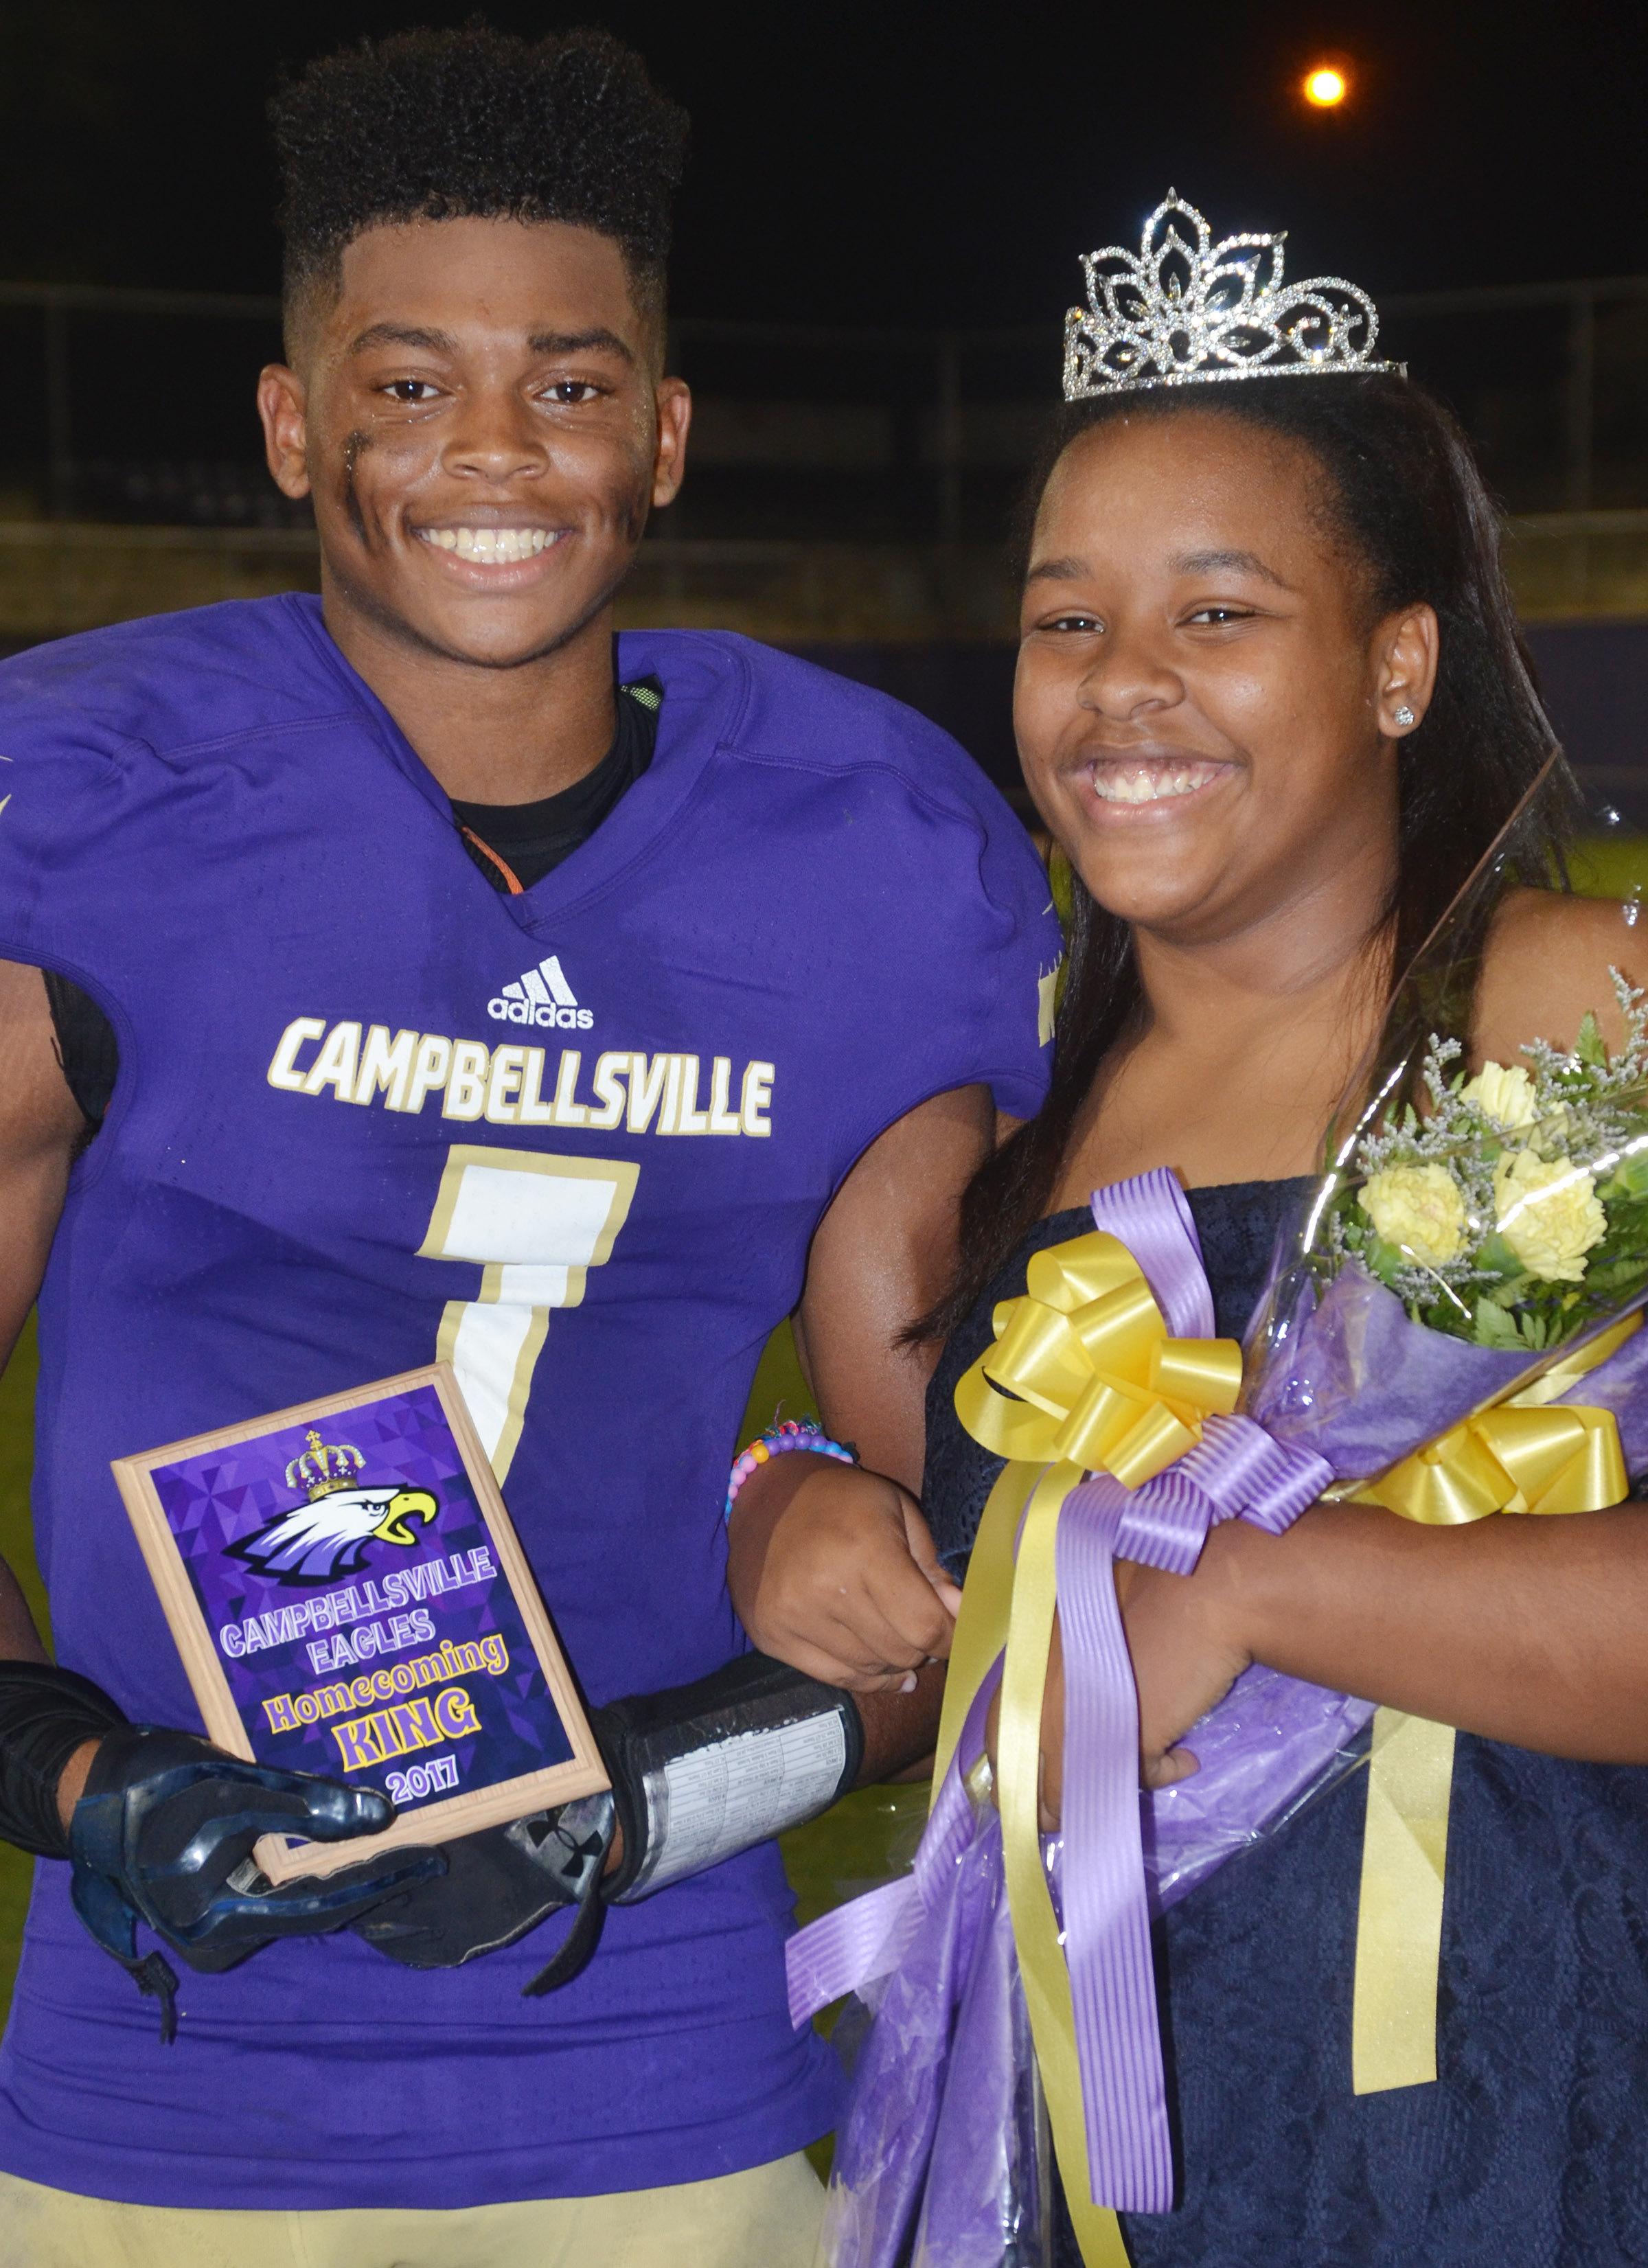 This year's CHS homecoming king and queen are seniors Devonte Cubit and Kayla Young.